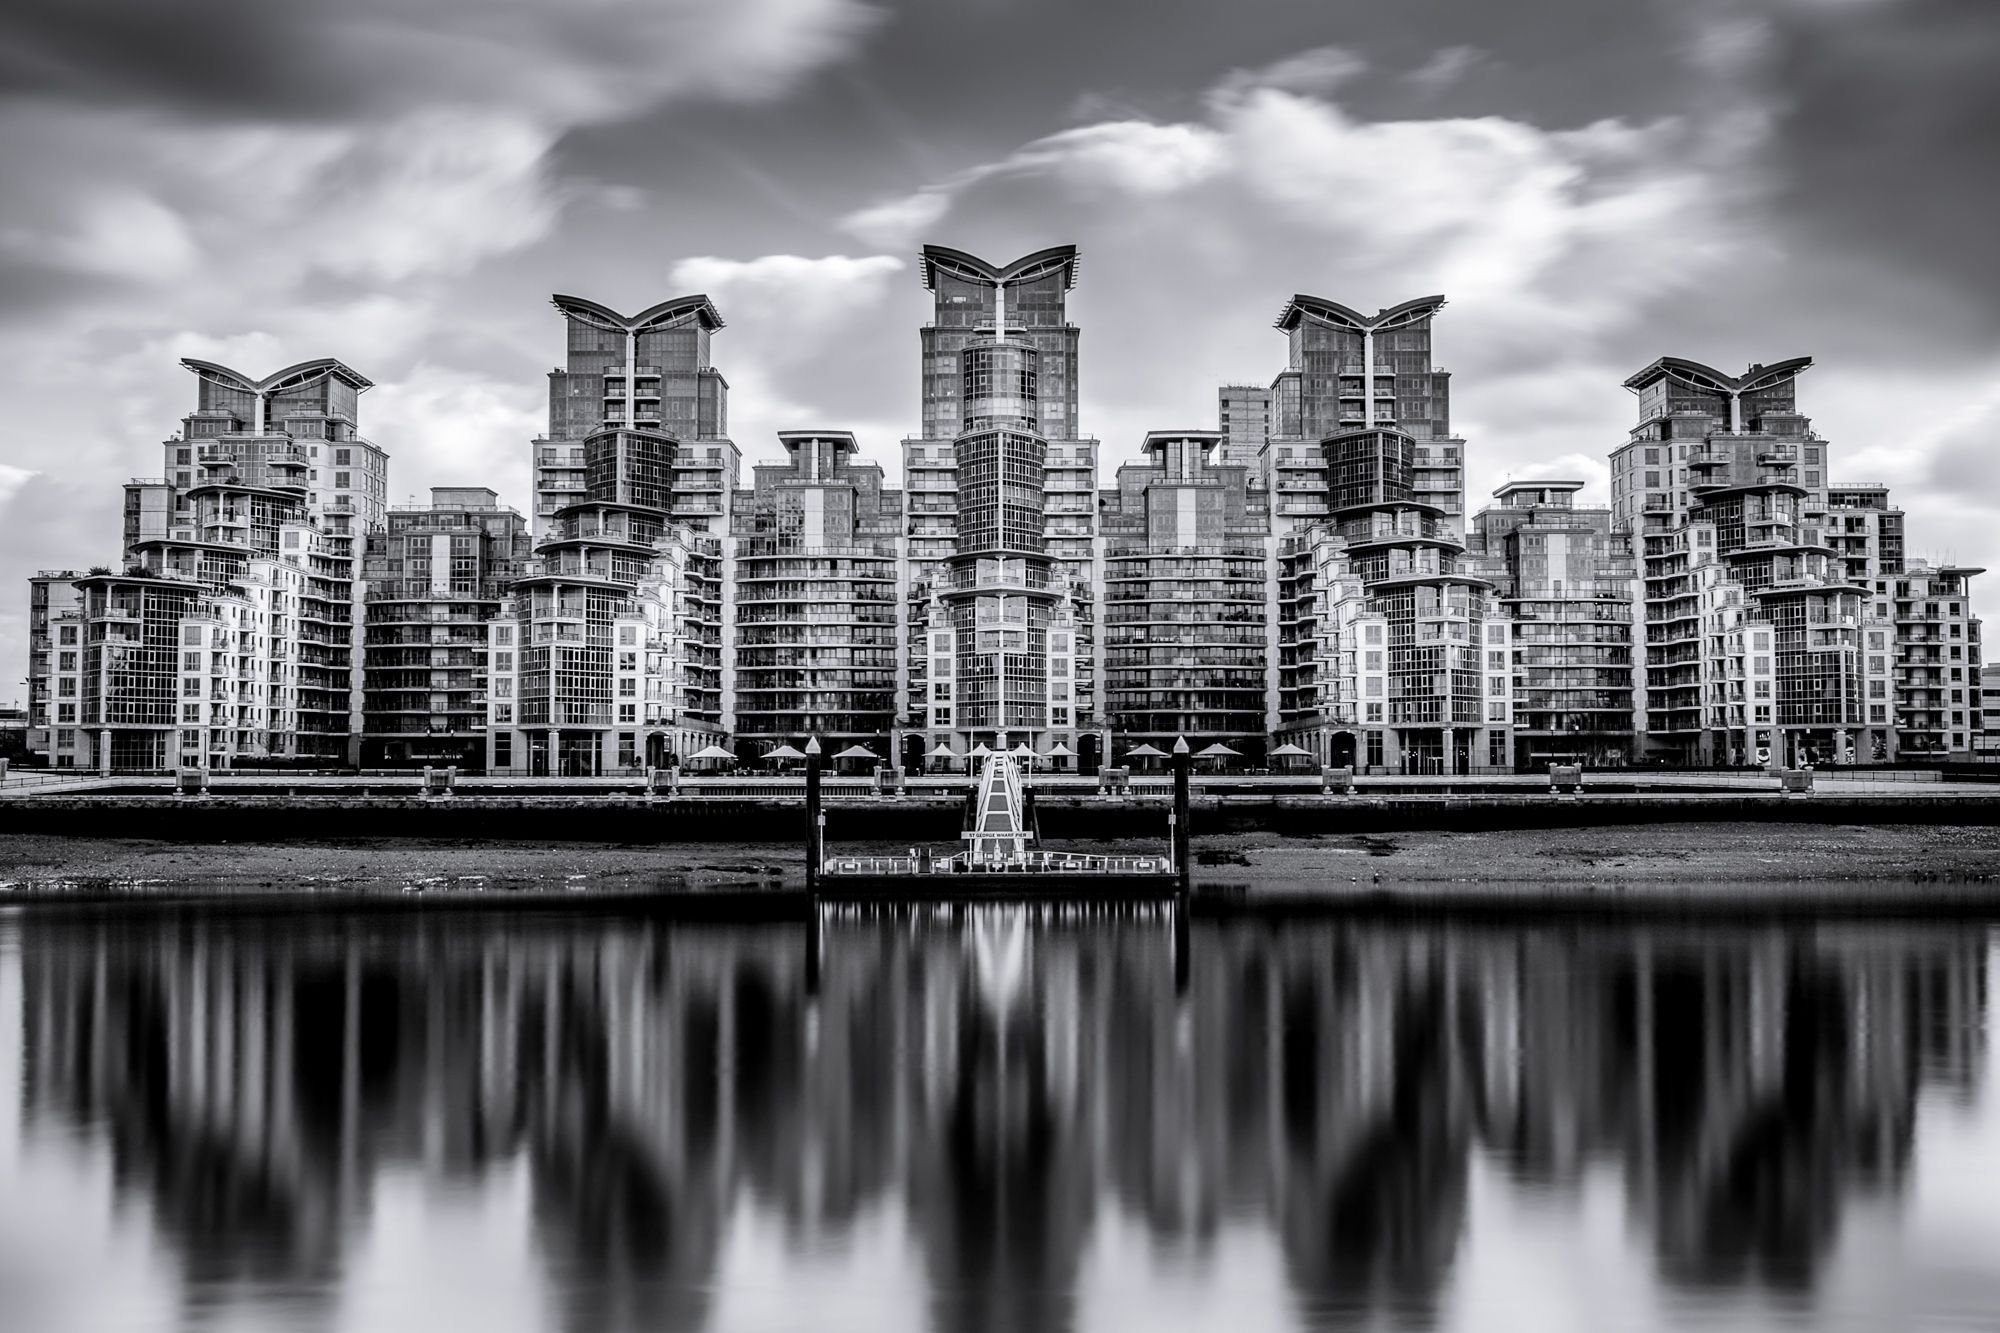 Photo of St George Wharf in Black and White taken by Trevor Sherwin